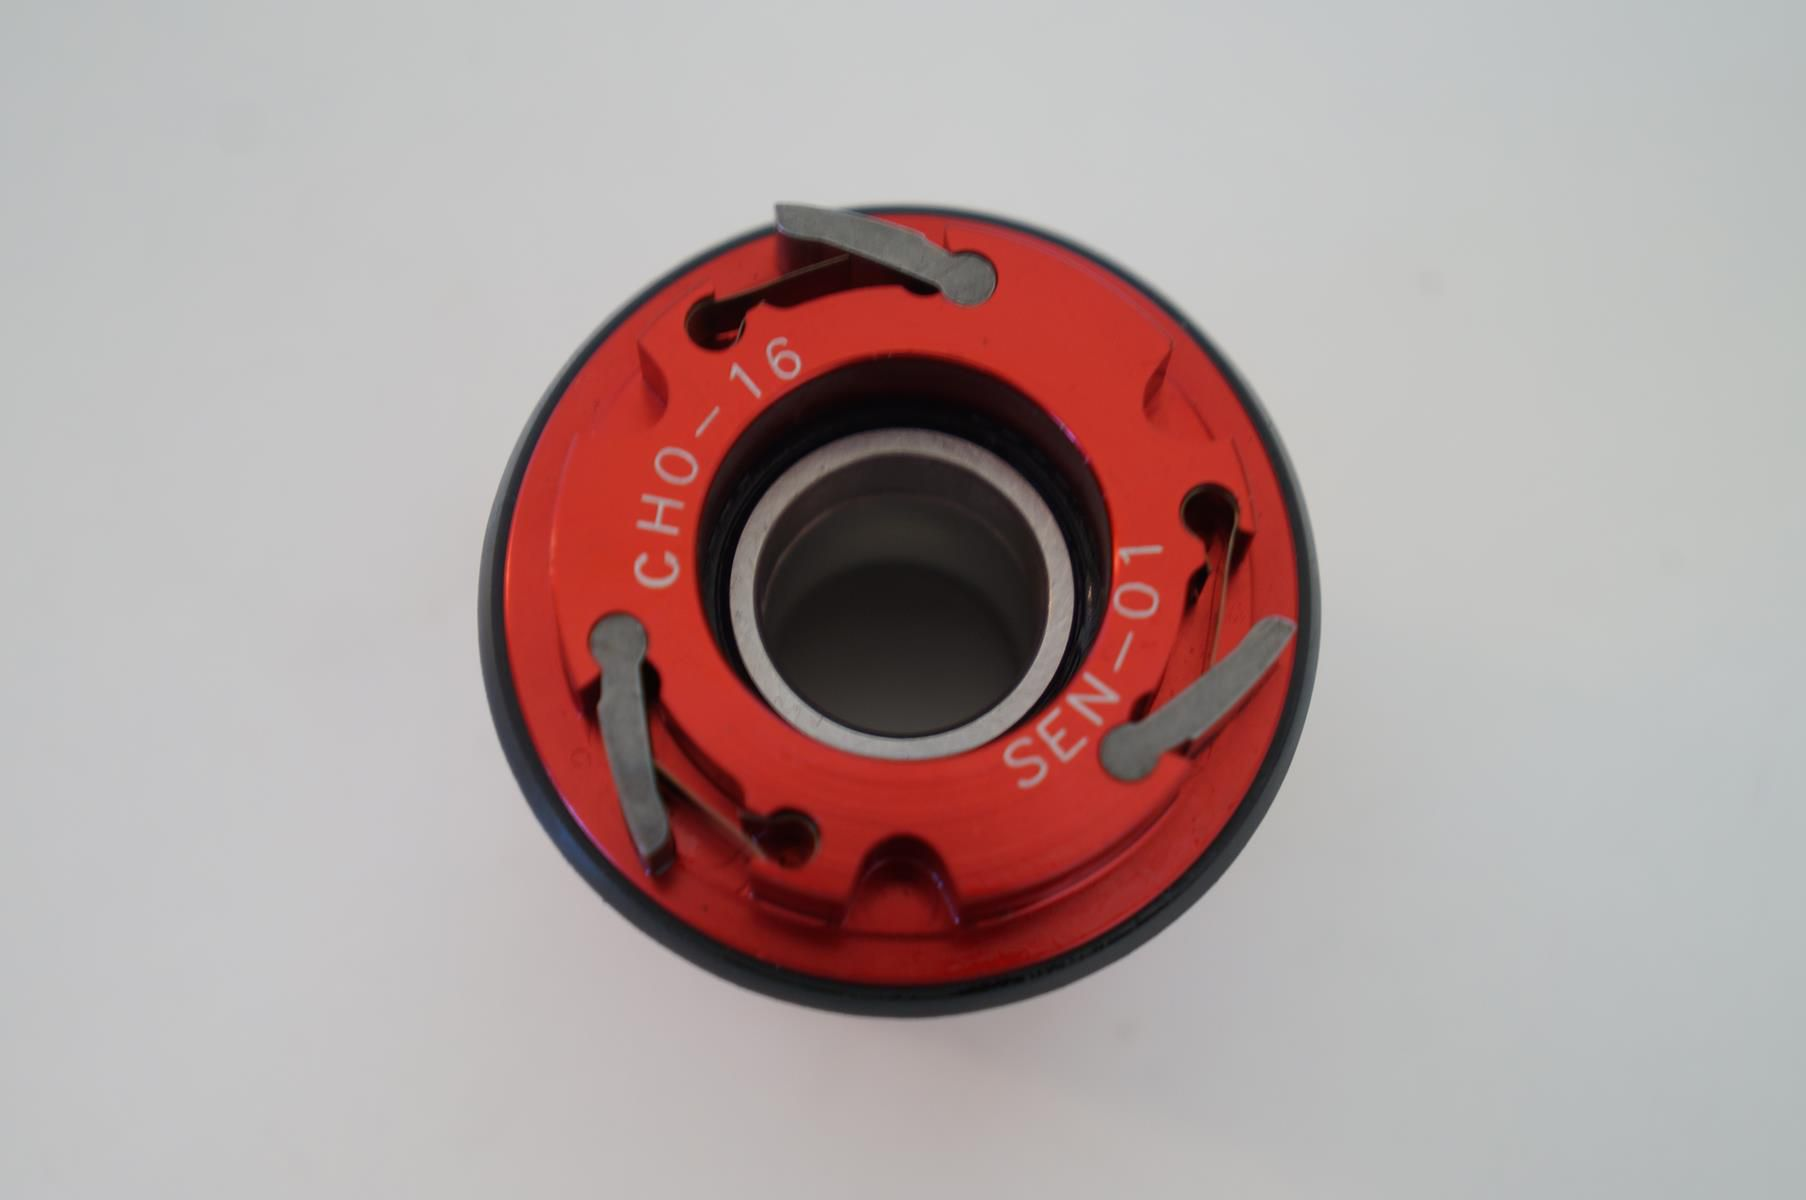 Freehub Cubo Stans Notubes 3.30 Vzan Everest XC Vicinitech 1550 para Cassetes Shimano 10 11 velocidades